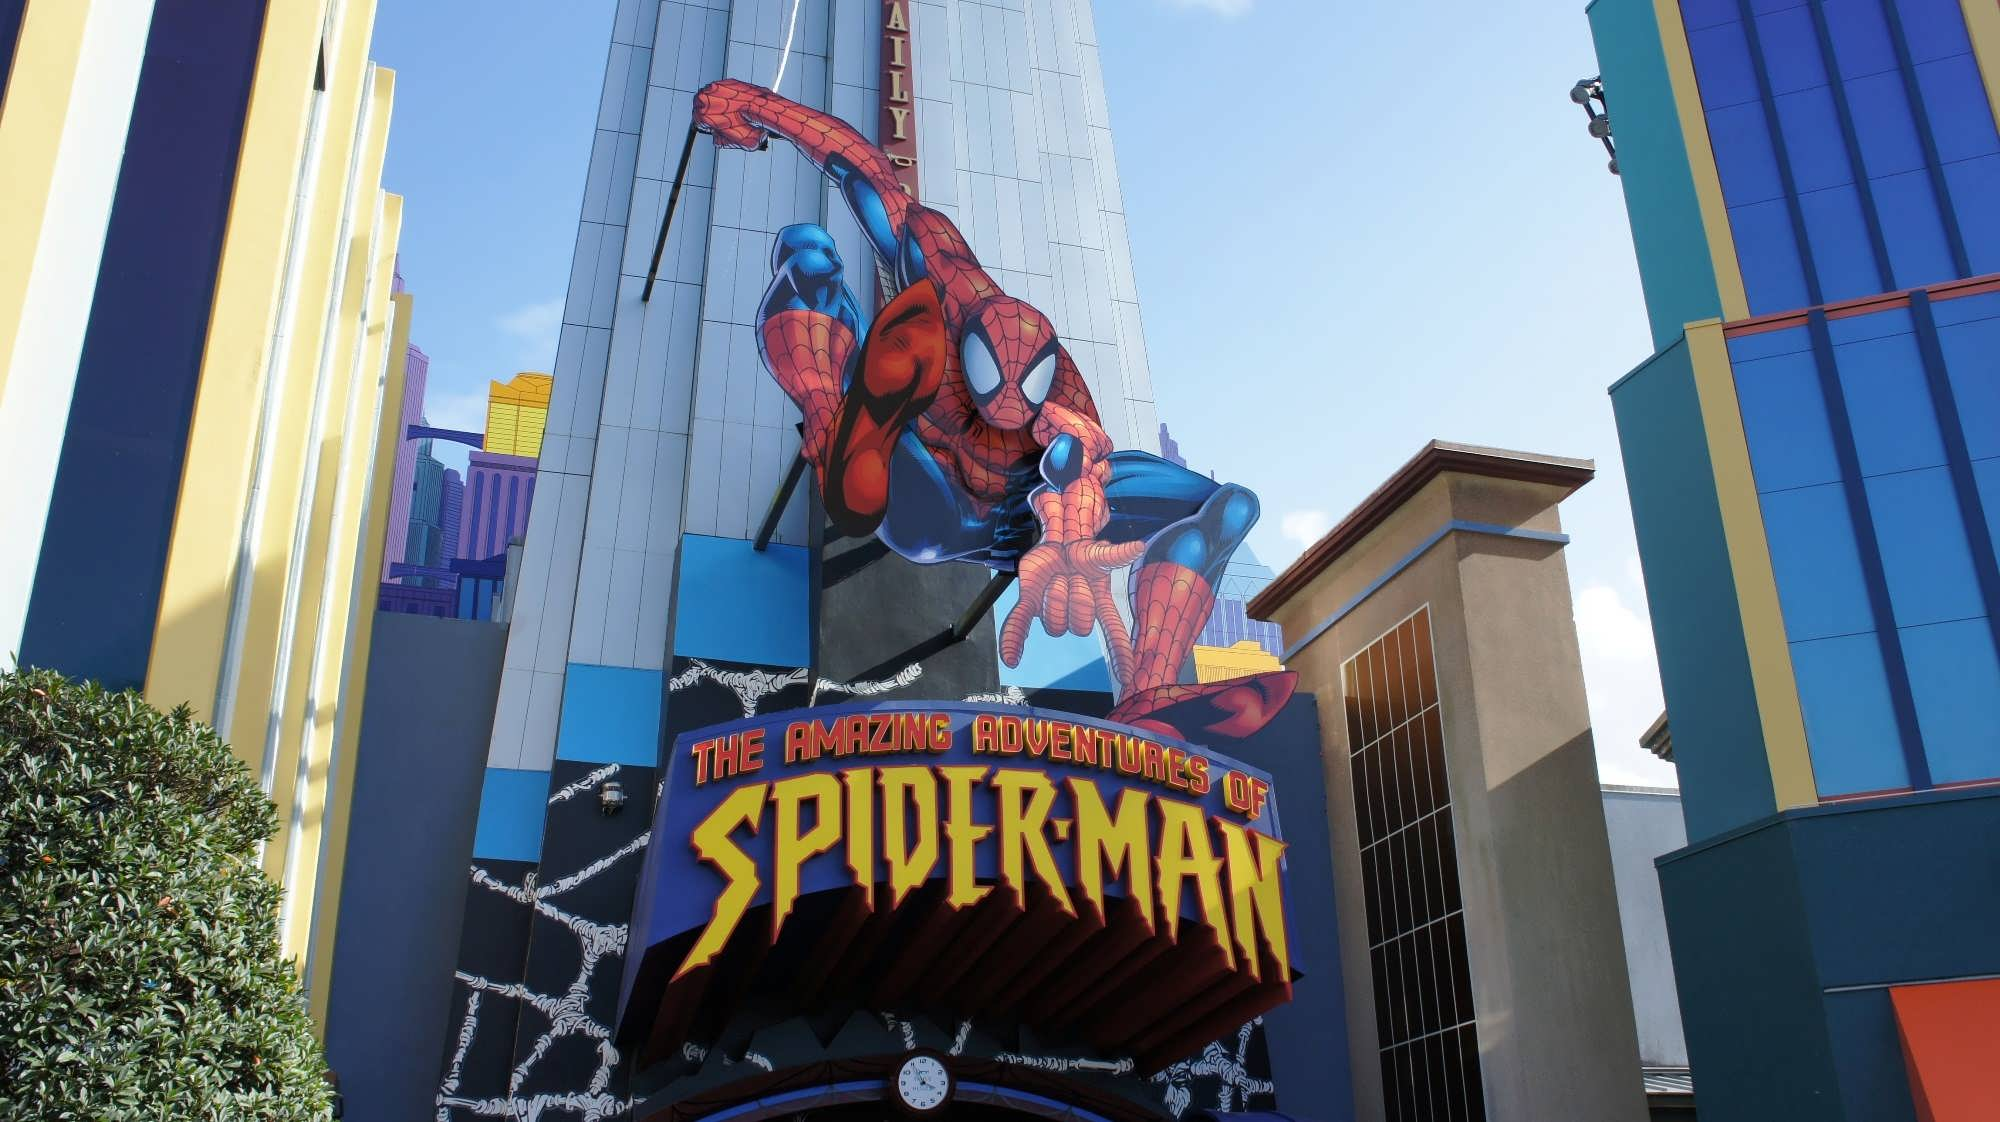 The Amazing Adventures of Spider-man ride exterior